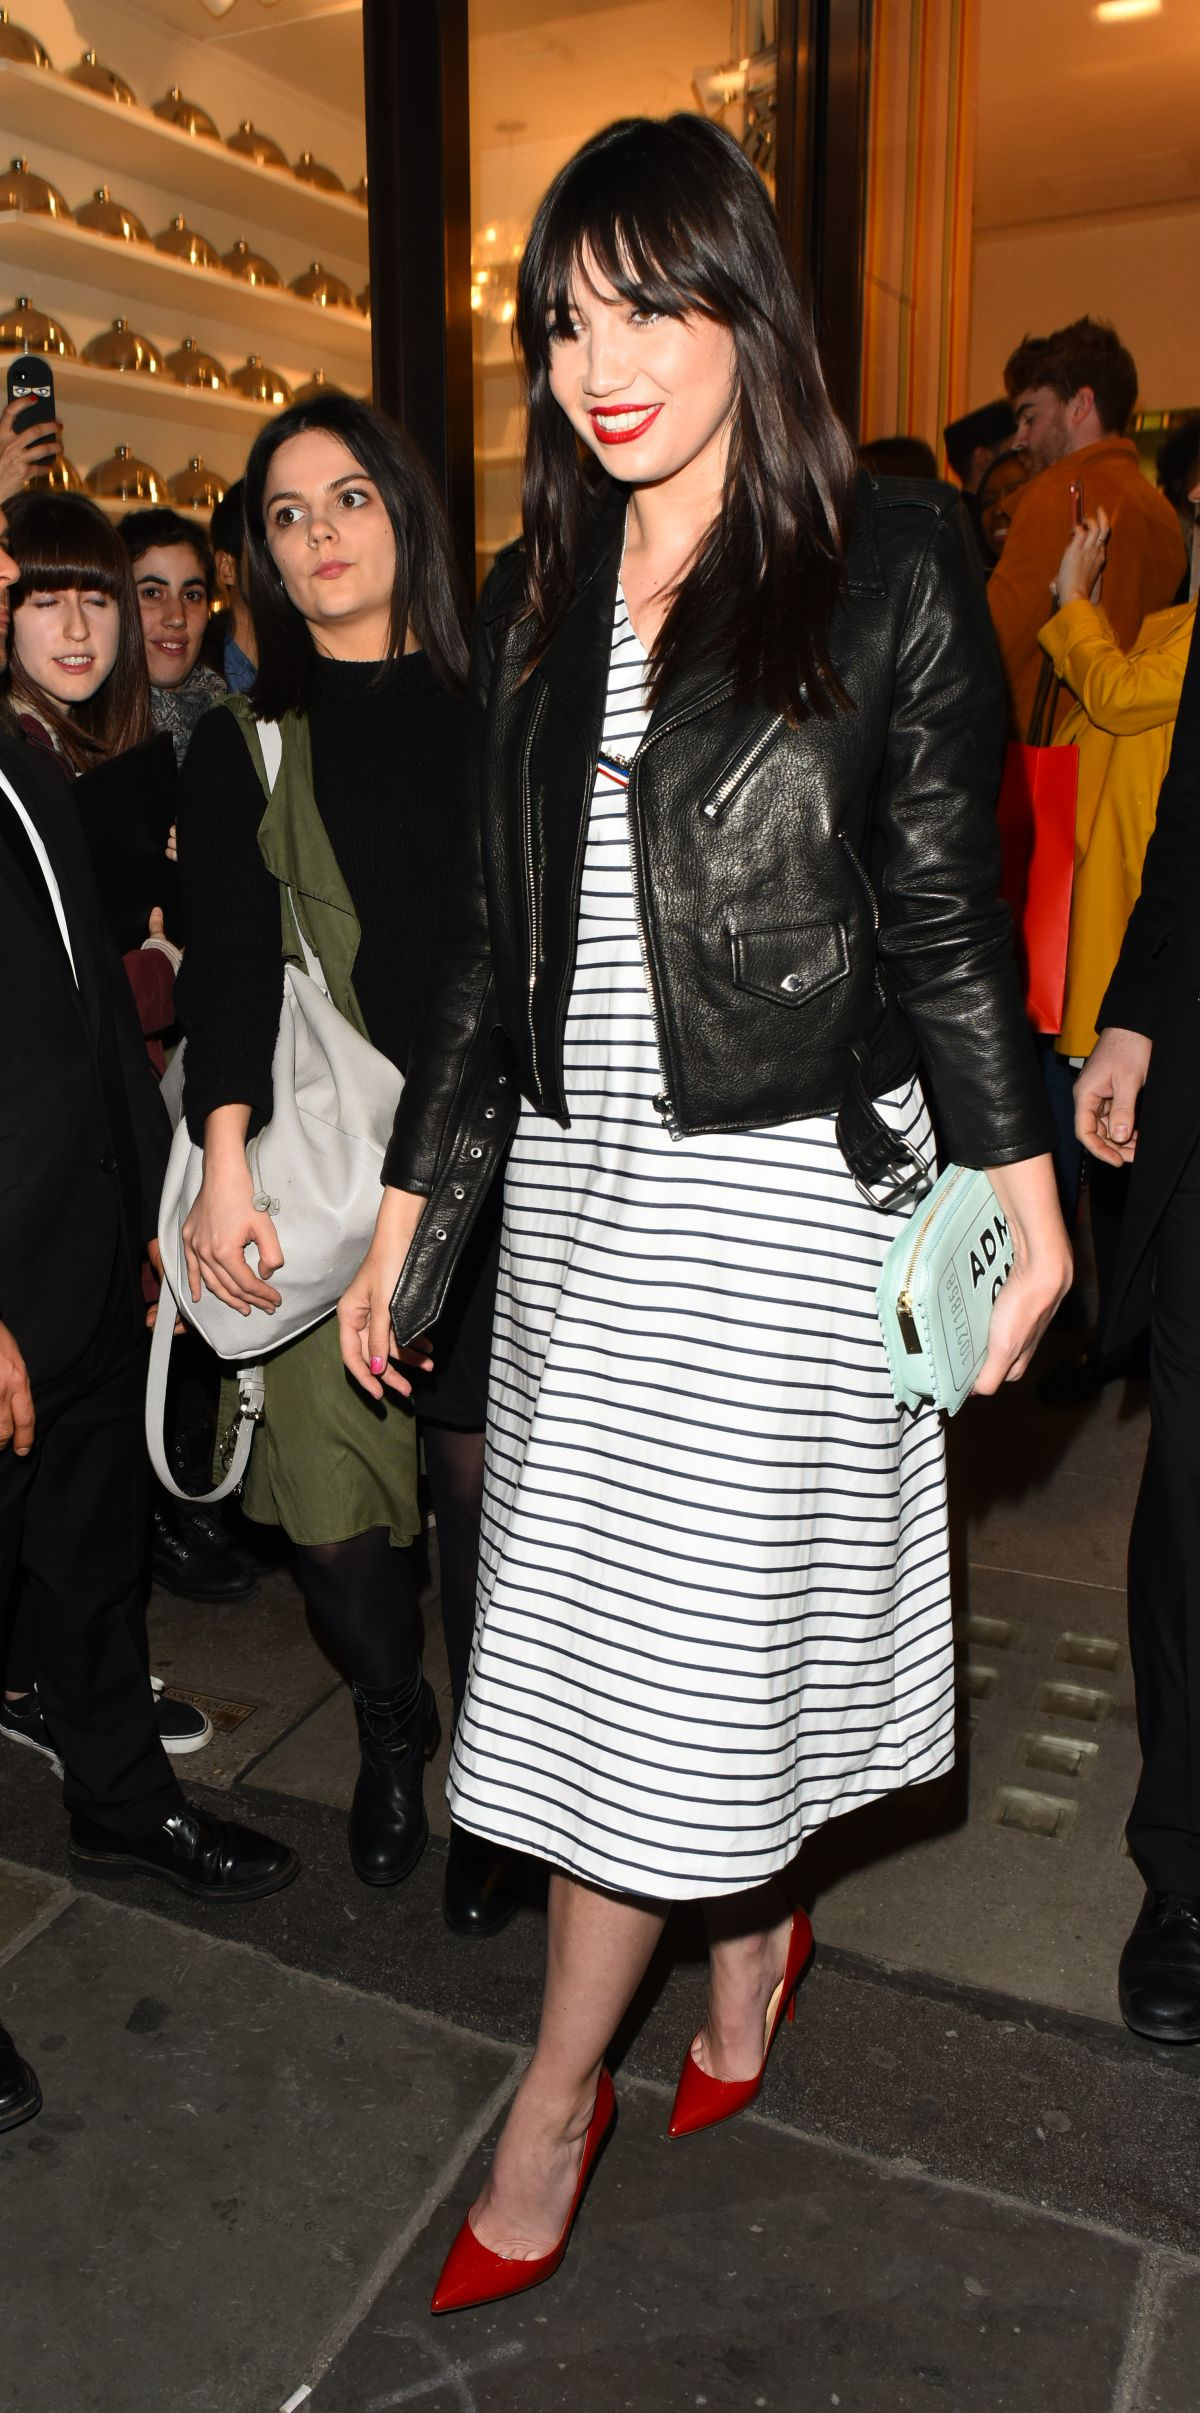 DAISY LOWE at Kate Spade New York Store Opening in London 04/21/2016